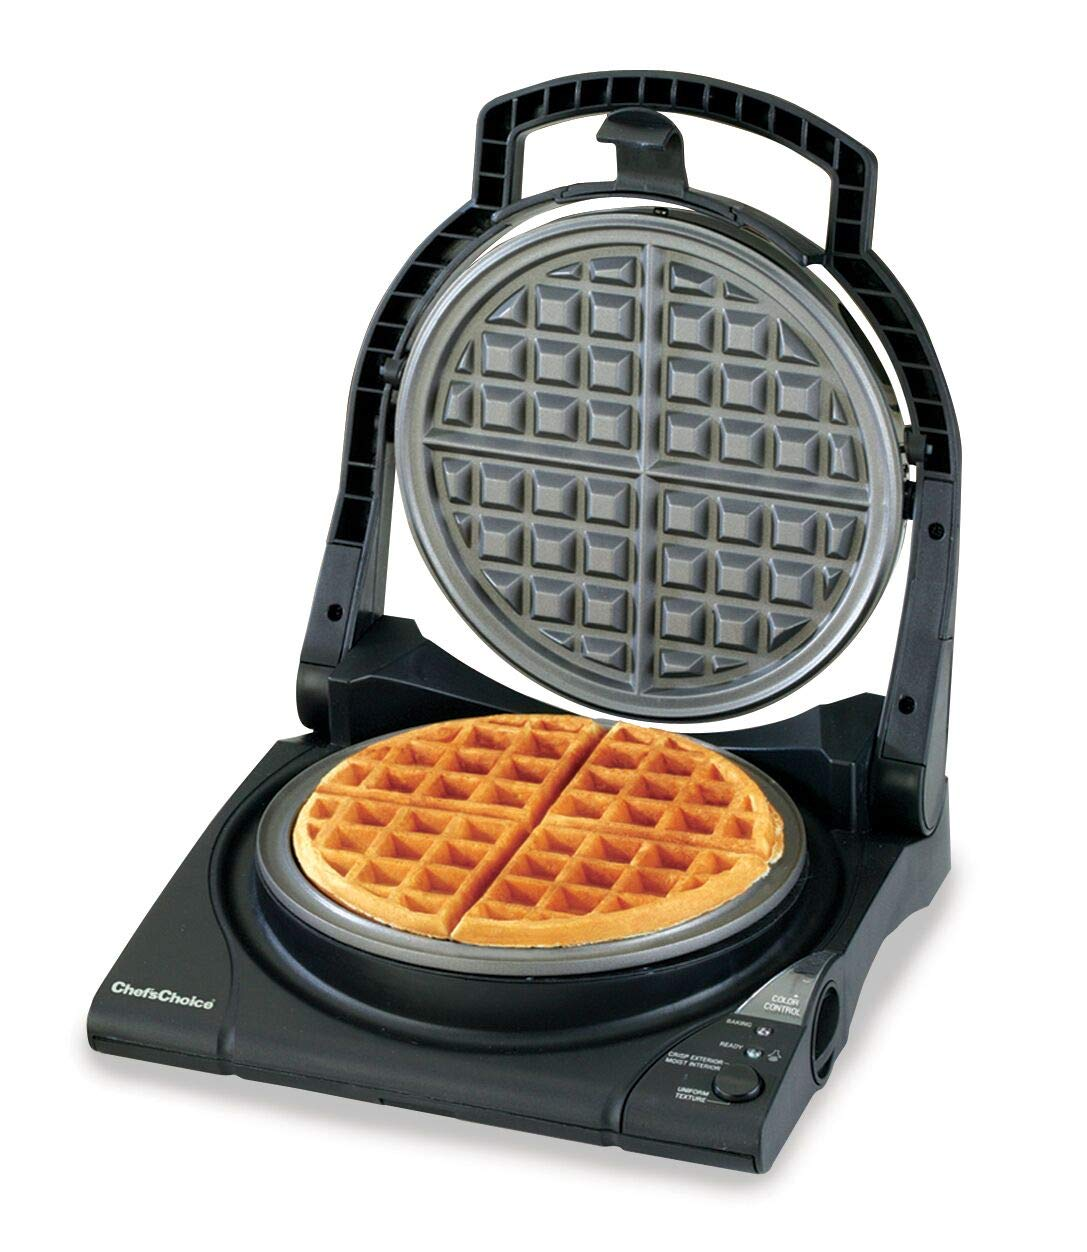 Chef sChoice 840B WafflePro Taste Texture Select Nonstick Classic Belgian Waffle Maker with Unique Quad Baking System and Easy Clean Overflow Channel, 4-Slice, Black